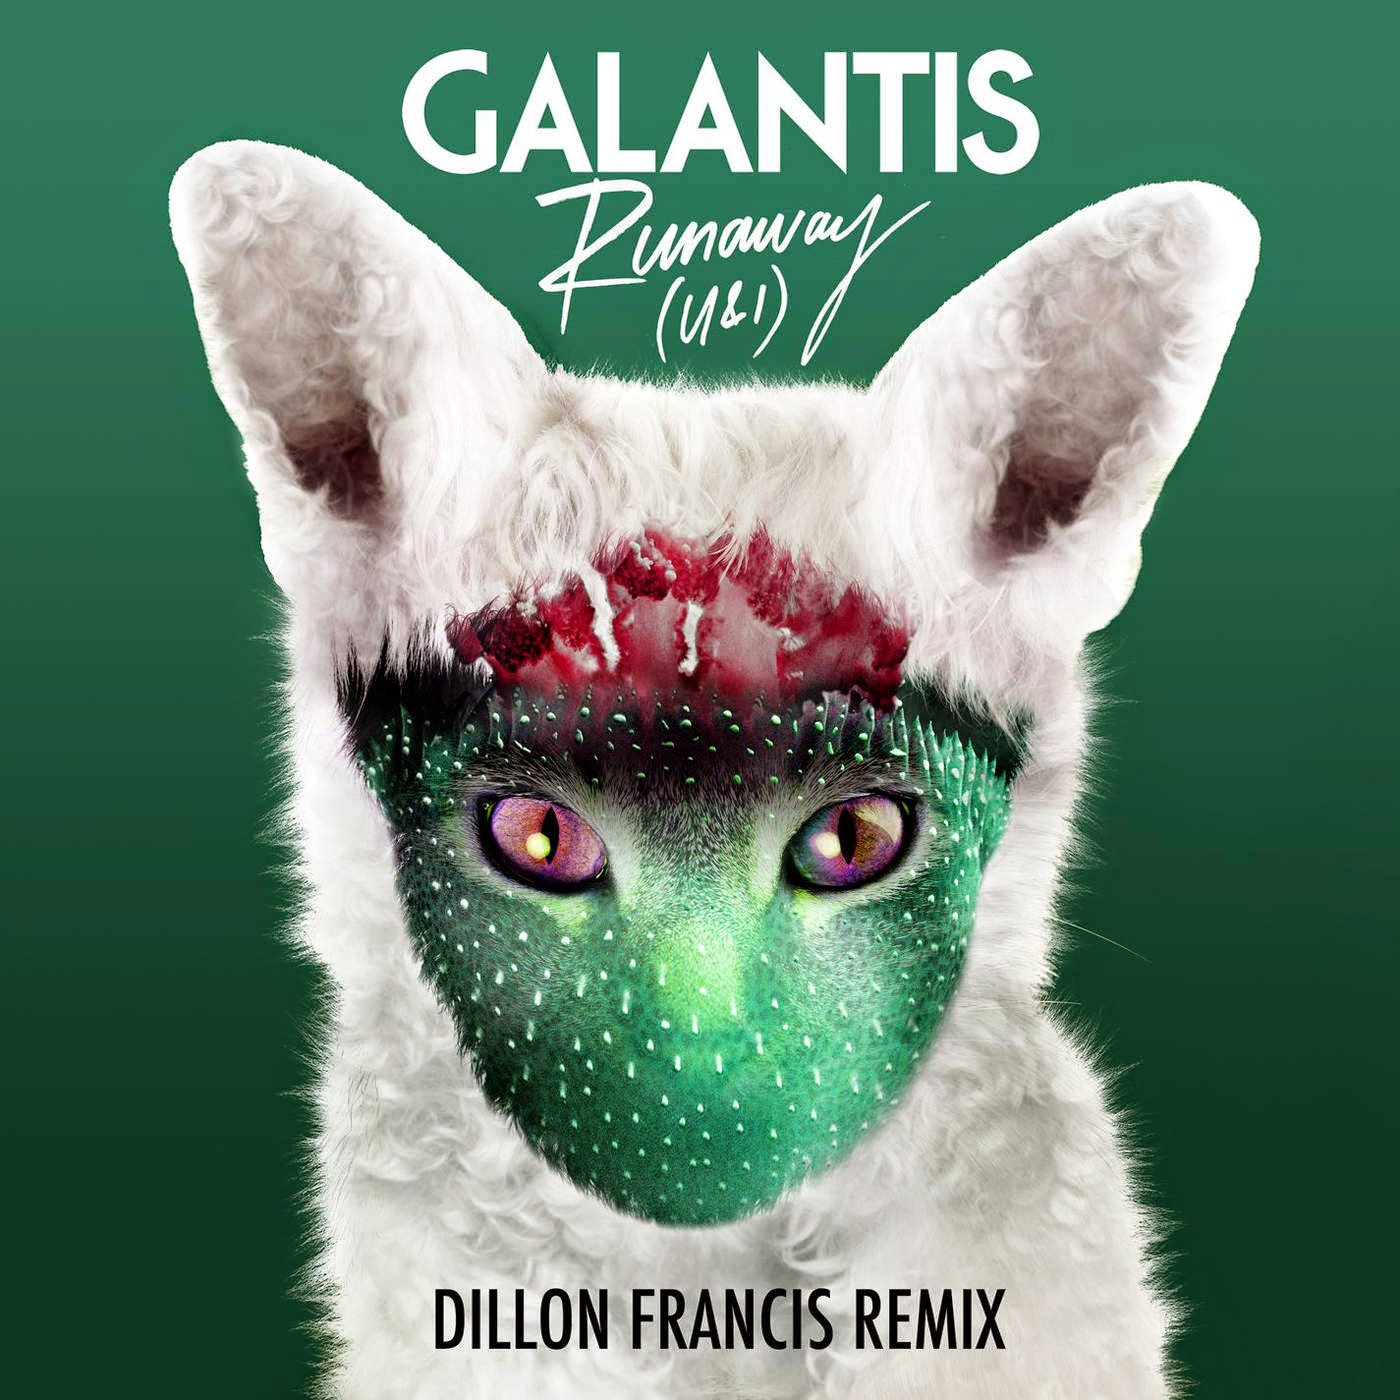 Galantis - Runaway (U & I) [Dillon Francis Remix] - Single  Cover